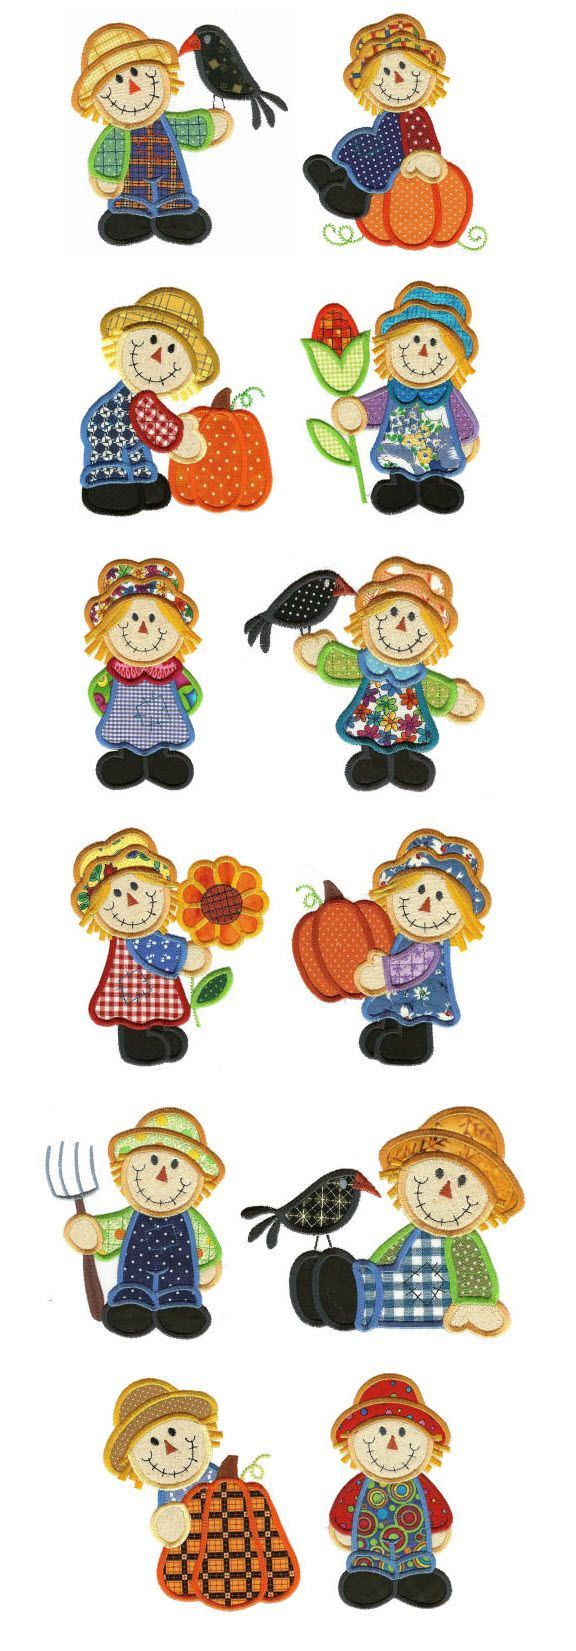 bordados o aplicar en tela Embroidery | Machine Embroidery Designs | Scarecrow Applique Designs by Designs by JuJu Love your scarecrows!!!